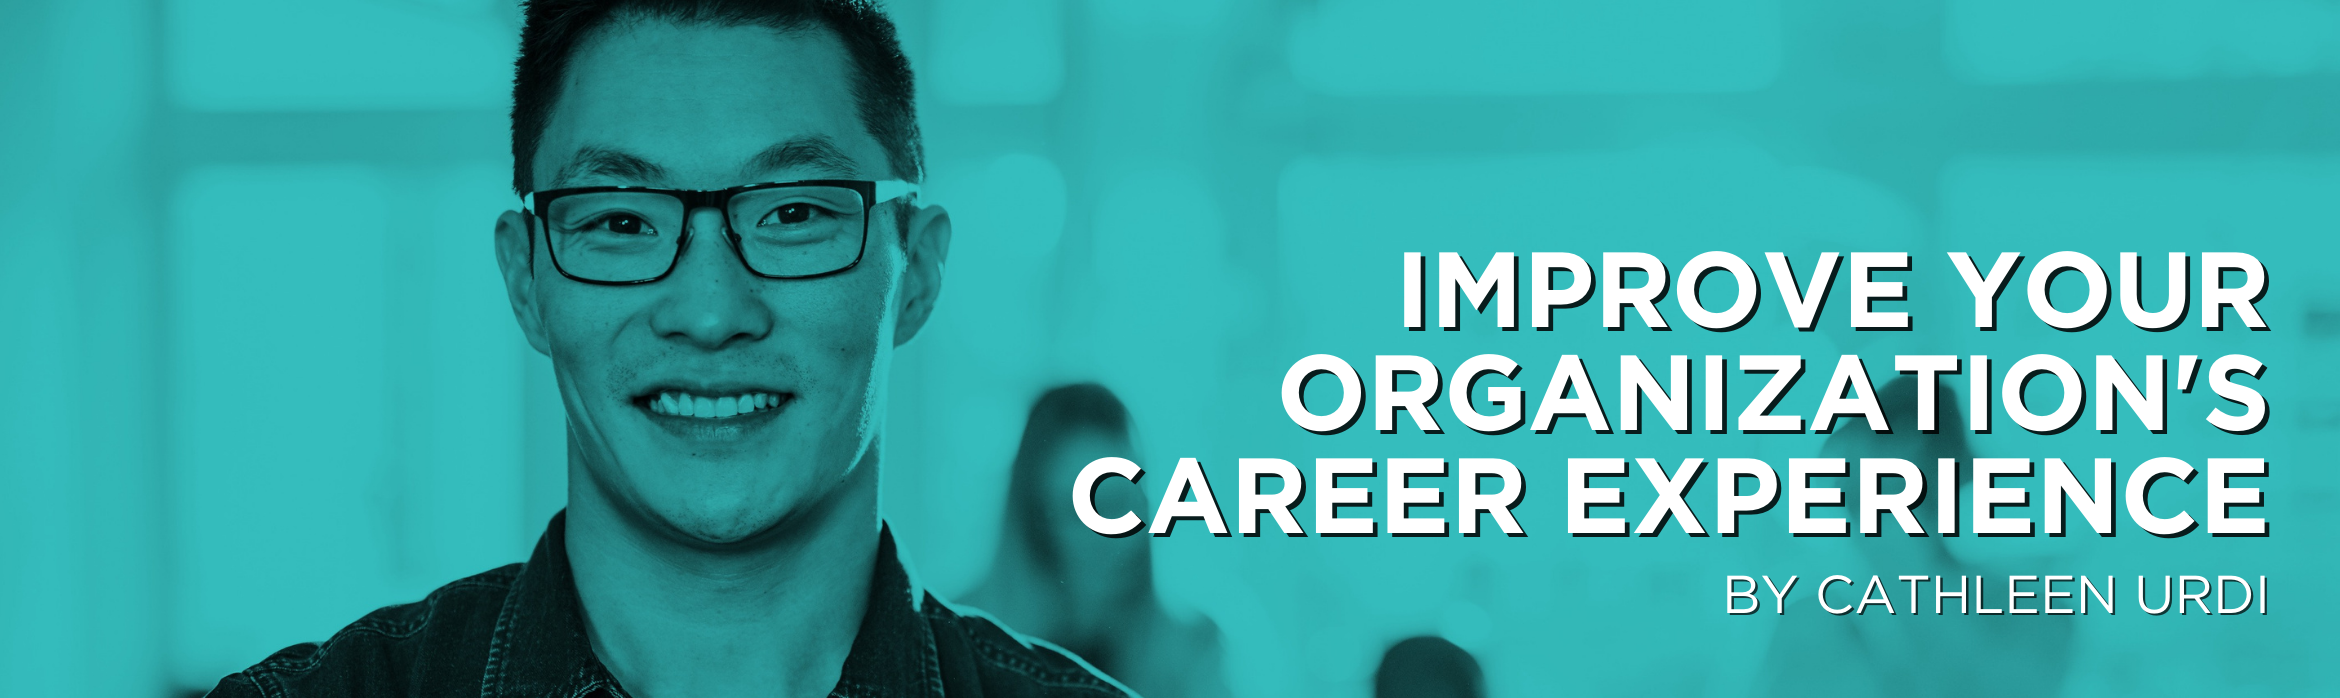 Improve your Organization's Career Experience